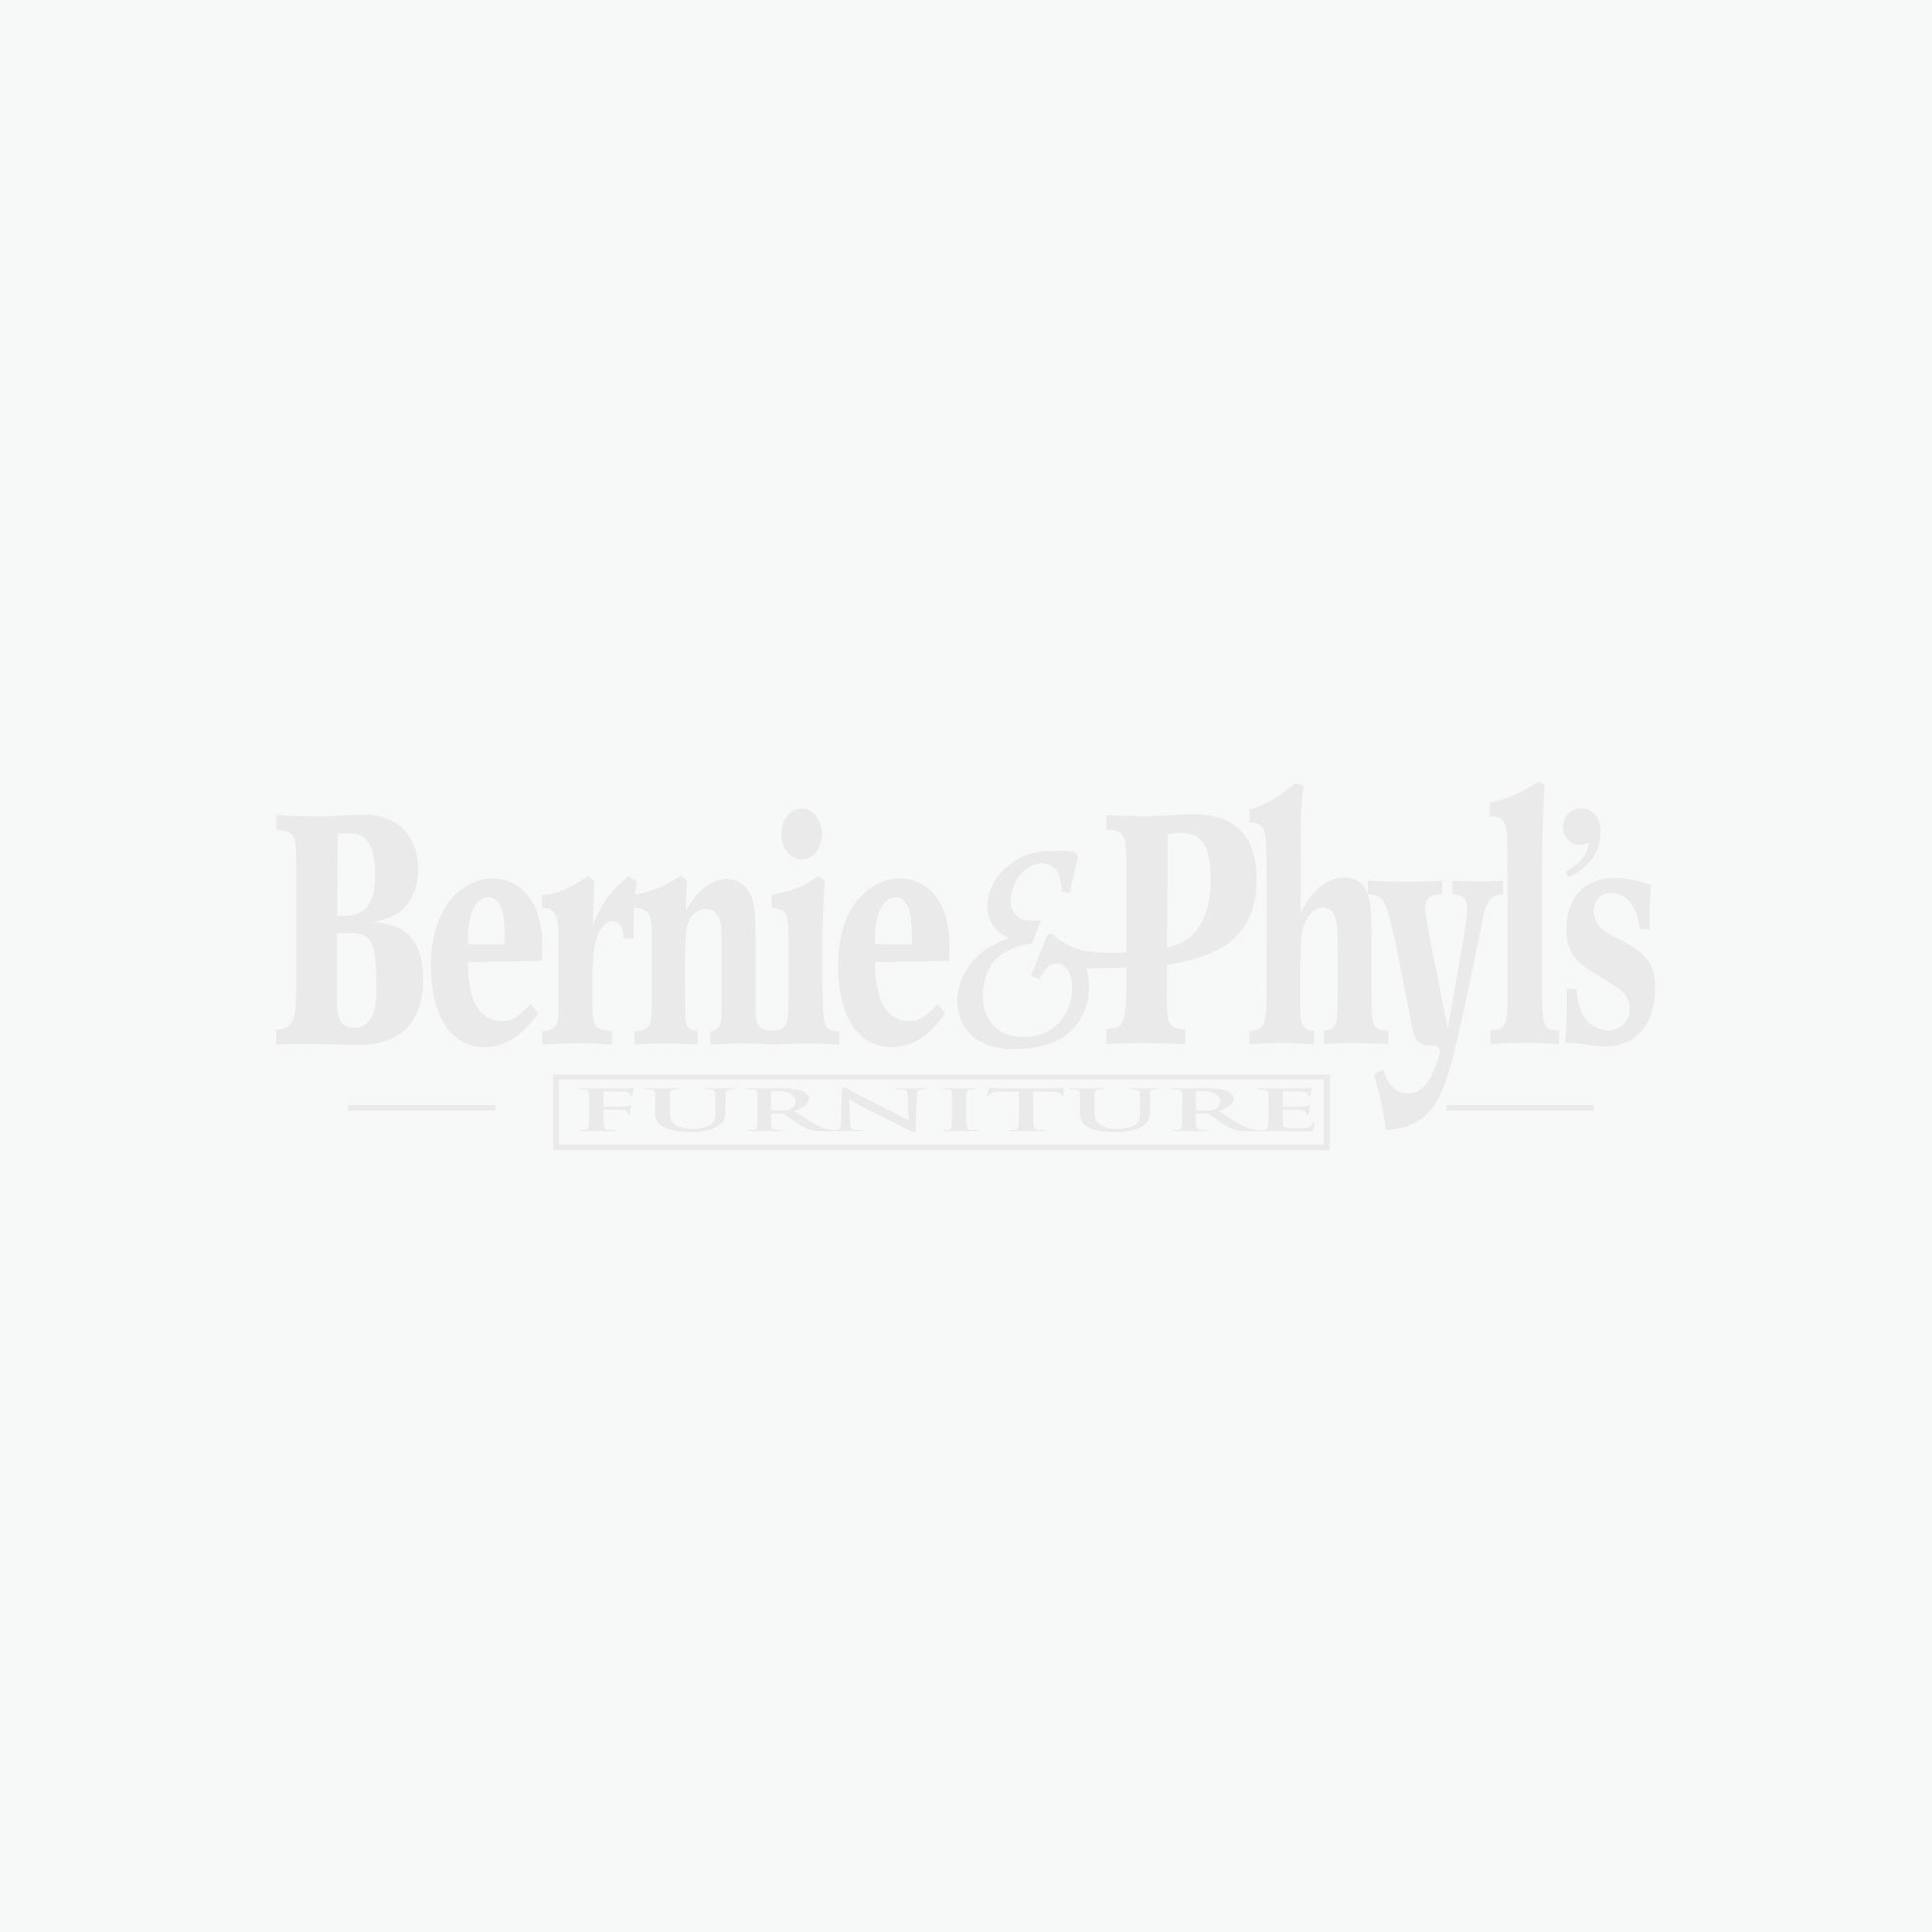 Possibilities Tan Upholstered Bed Bernie Phyl S Furniture By Klaussner Furniture Industries